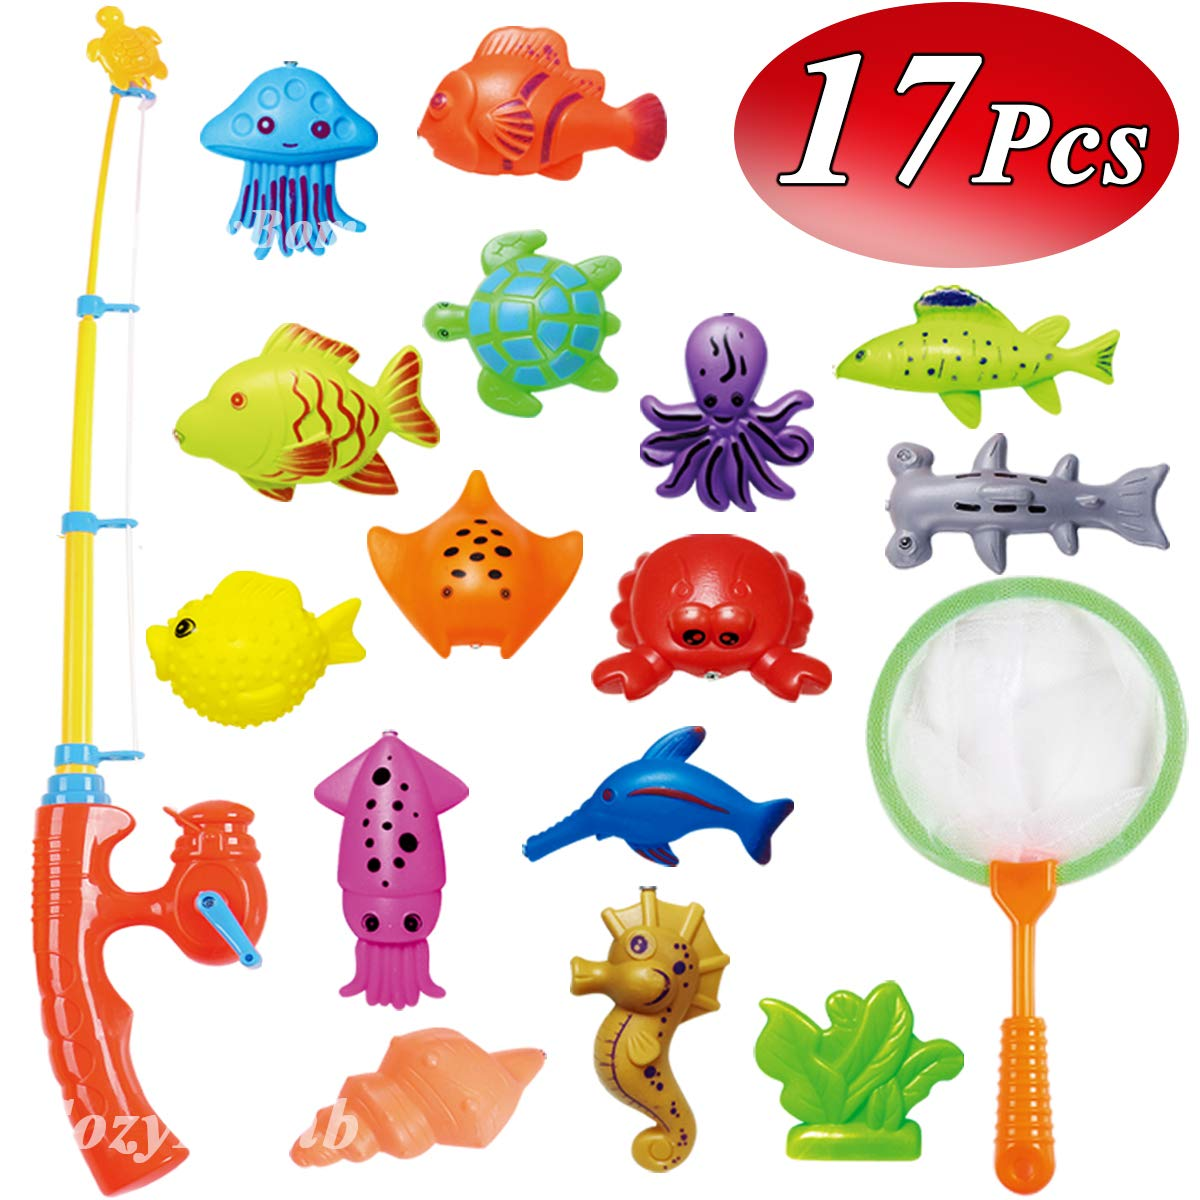 Toddler Education Teaching and Learning Colors Ocean Sea Animals Plastic Floating Fish CozyBomB Magnetic Fishing Toys Game Set for Kids for Bath Time Pool Party with Pole Rod Net